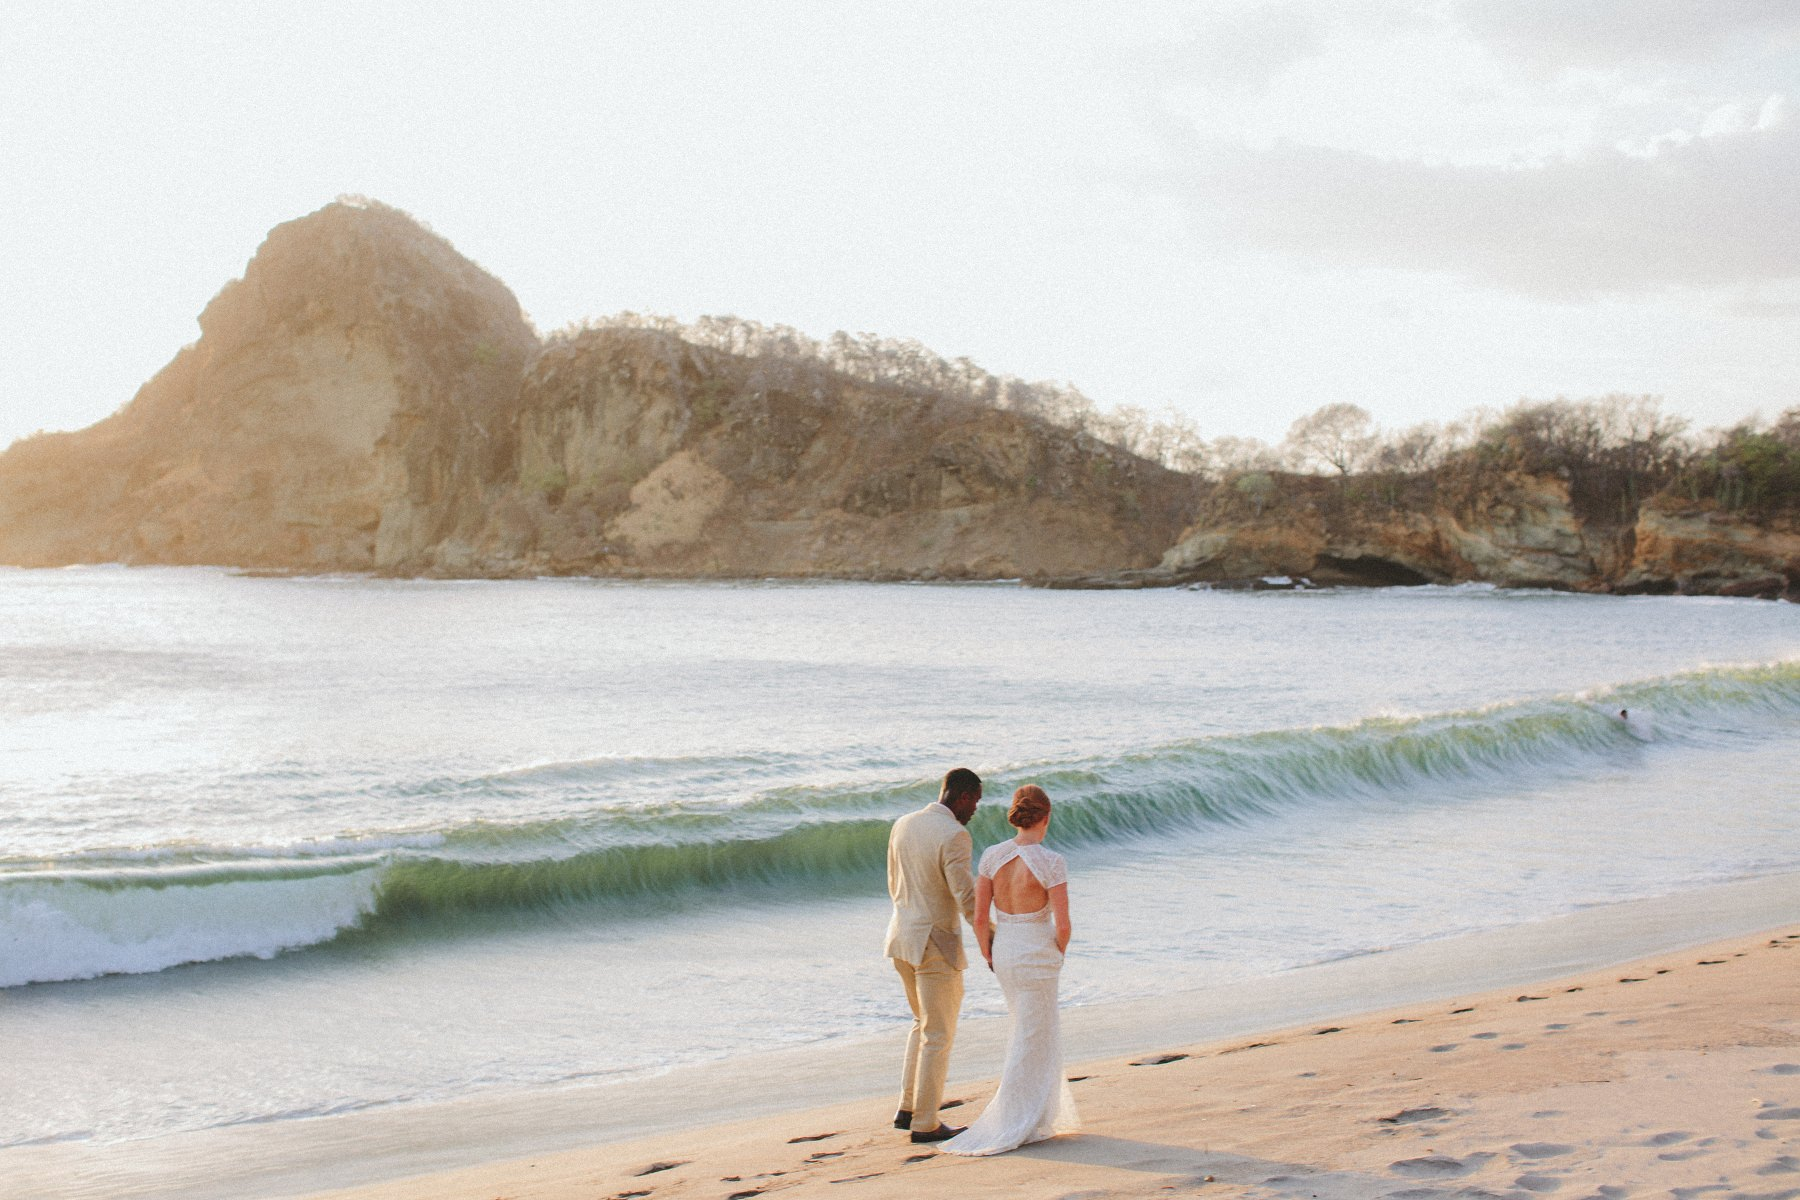 Bride and groom walking at the beach after their wedding in Nicaragua. Blue ocean and dramatic rock formations are creating a backdrop